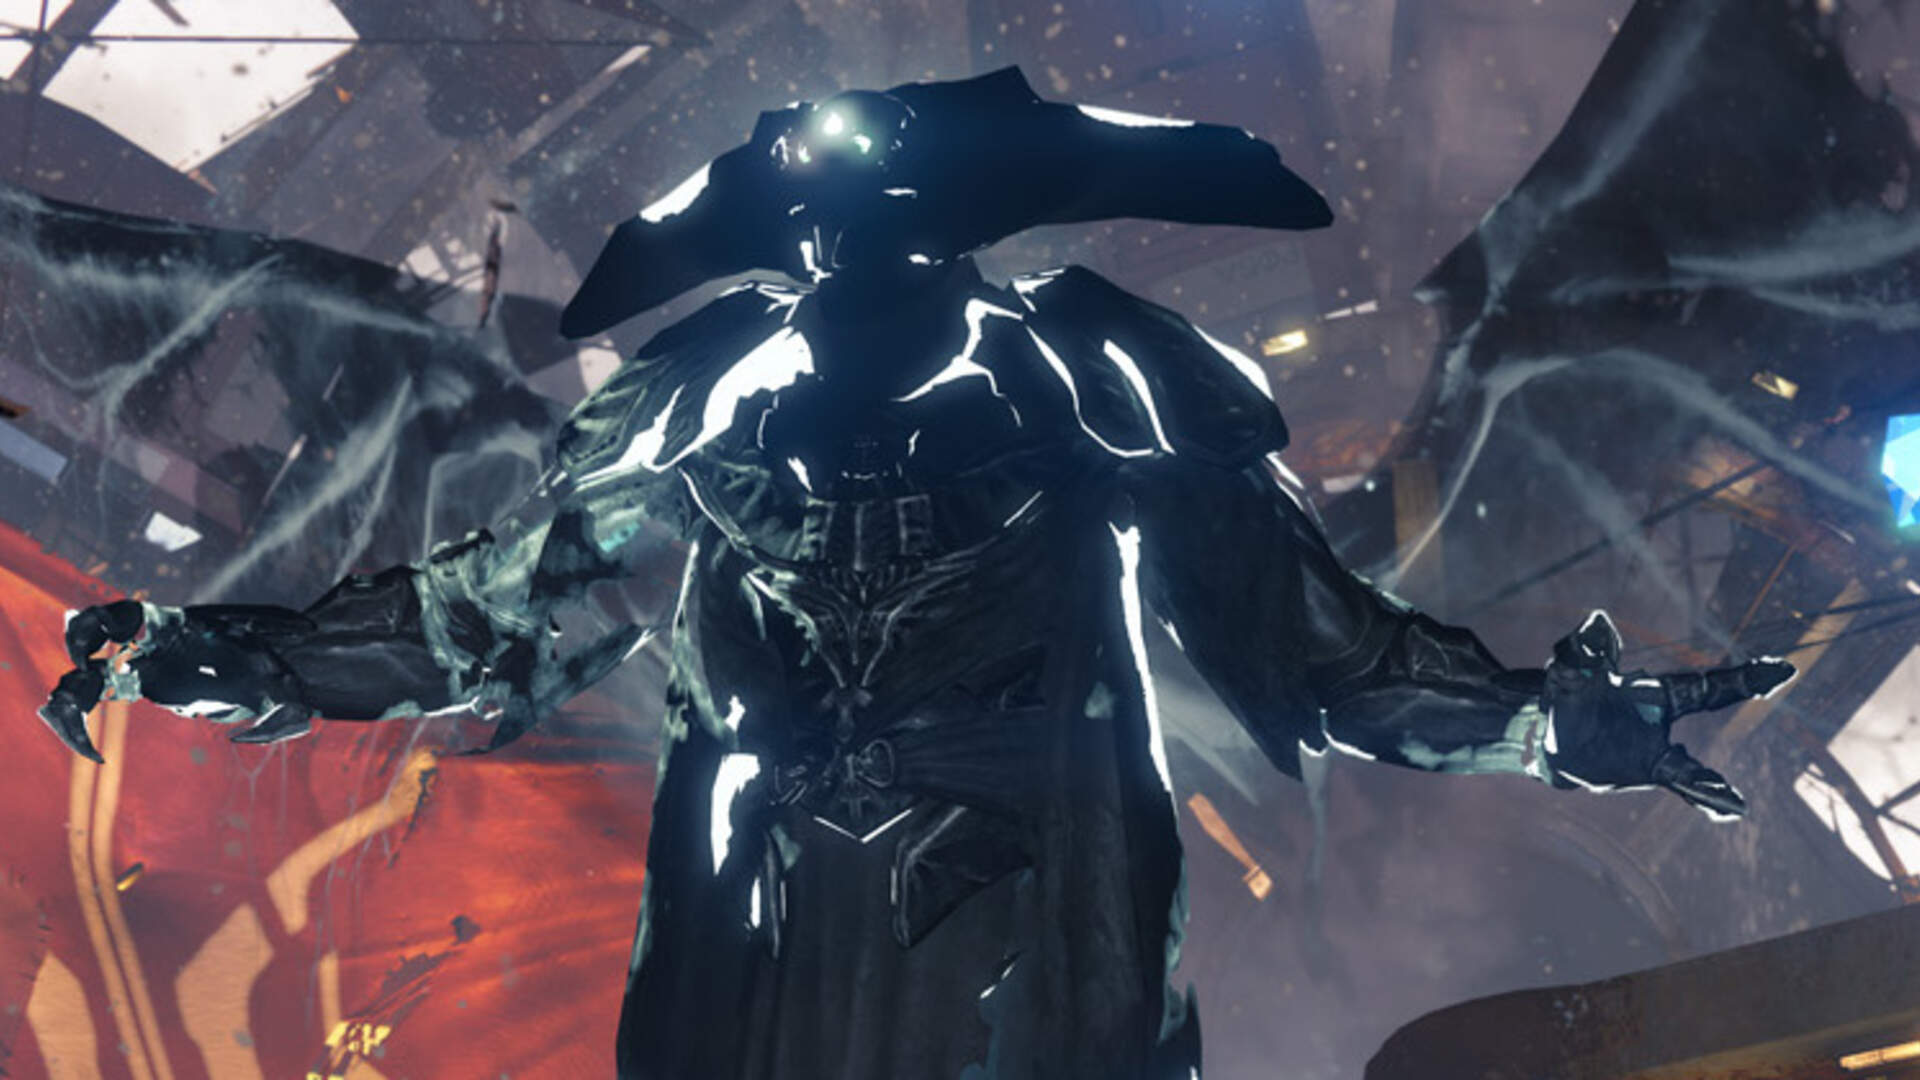 Destiny: The Taken King Walkthrough and Guide - King's Fall Raid, Bounties and Strikes